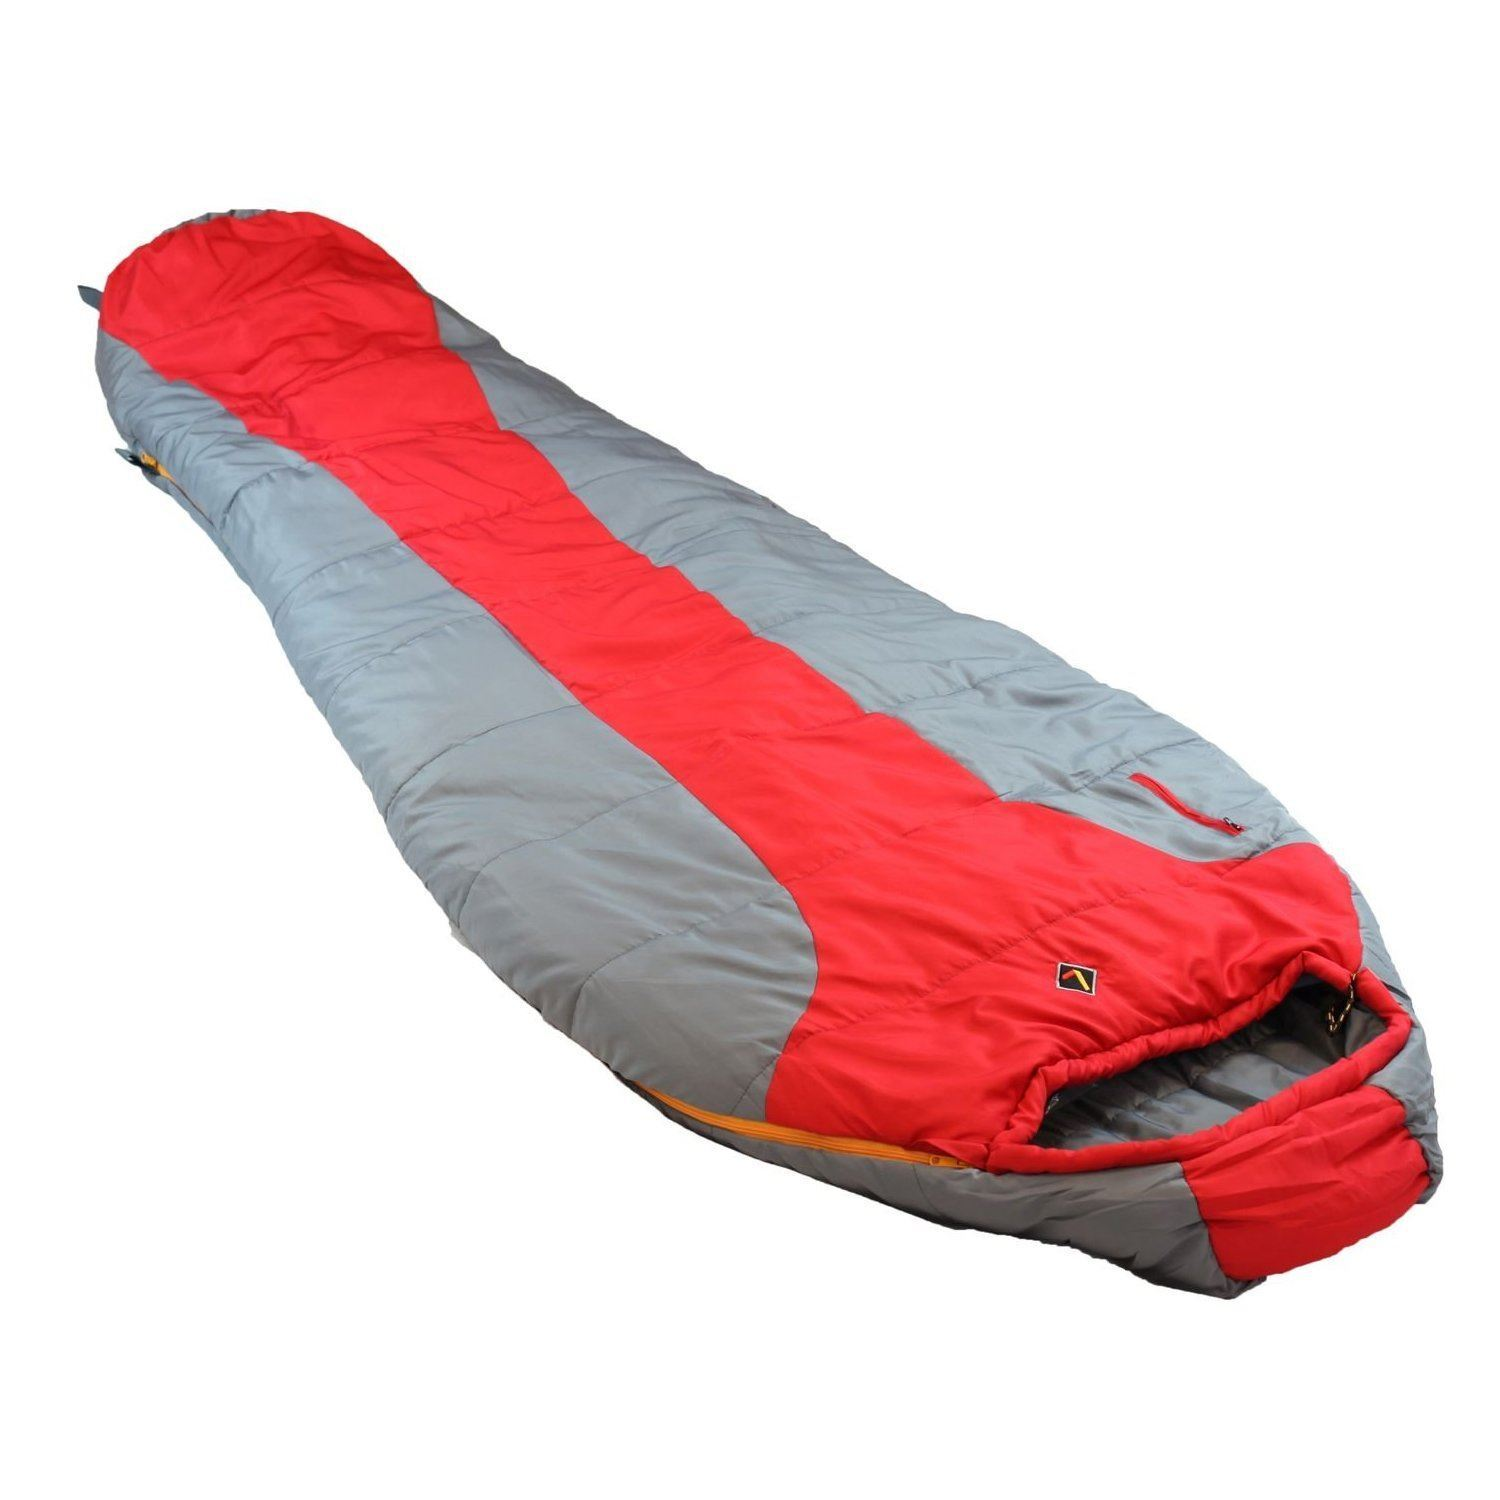 New Ledge Sports Featherlite +20 F Mummy Sleeping Bag 6448